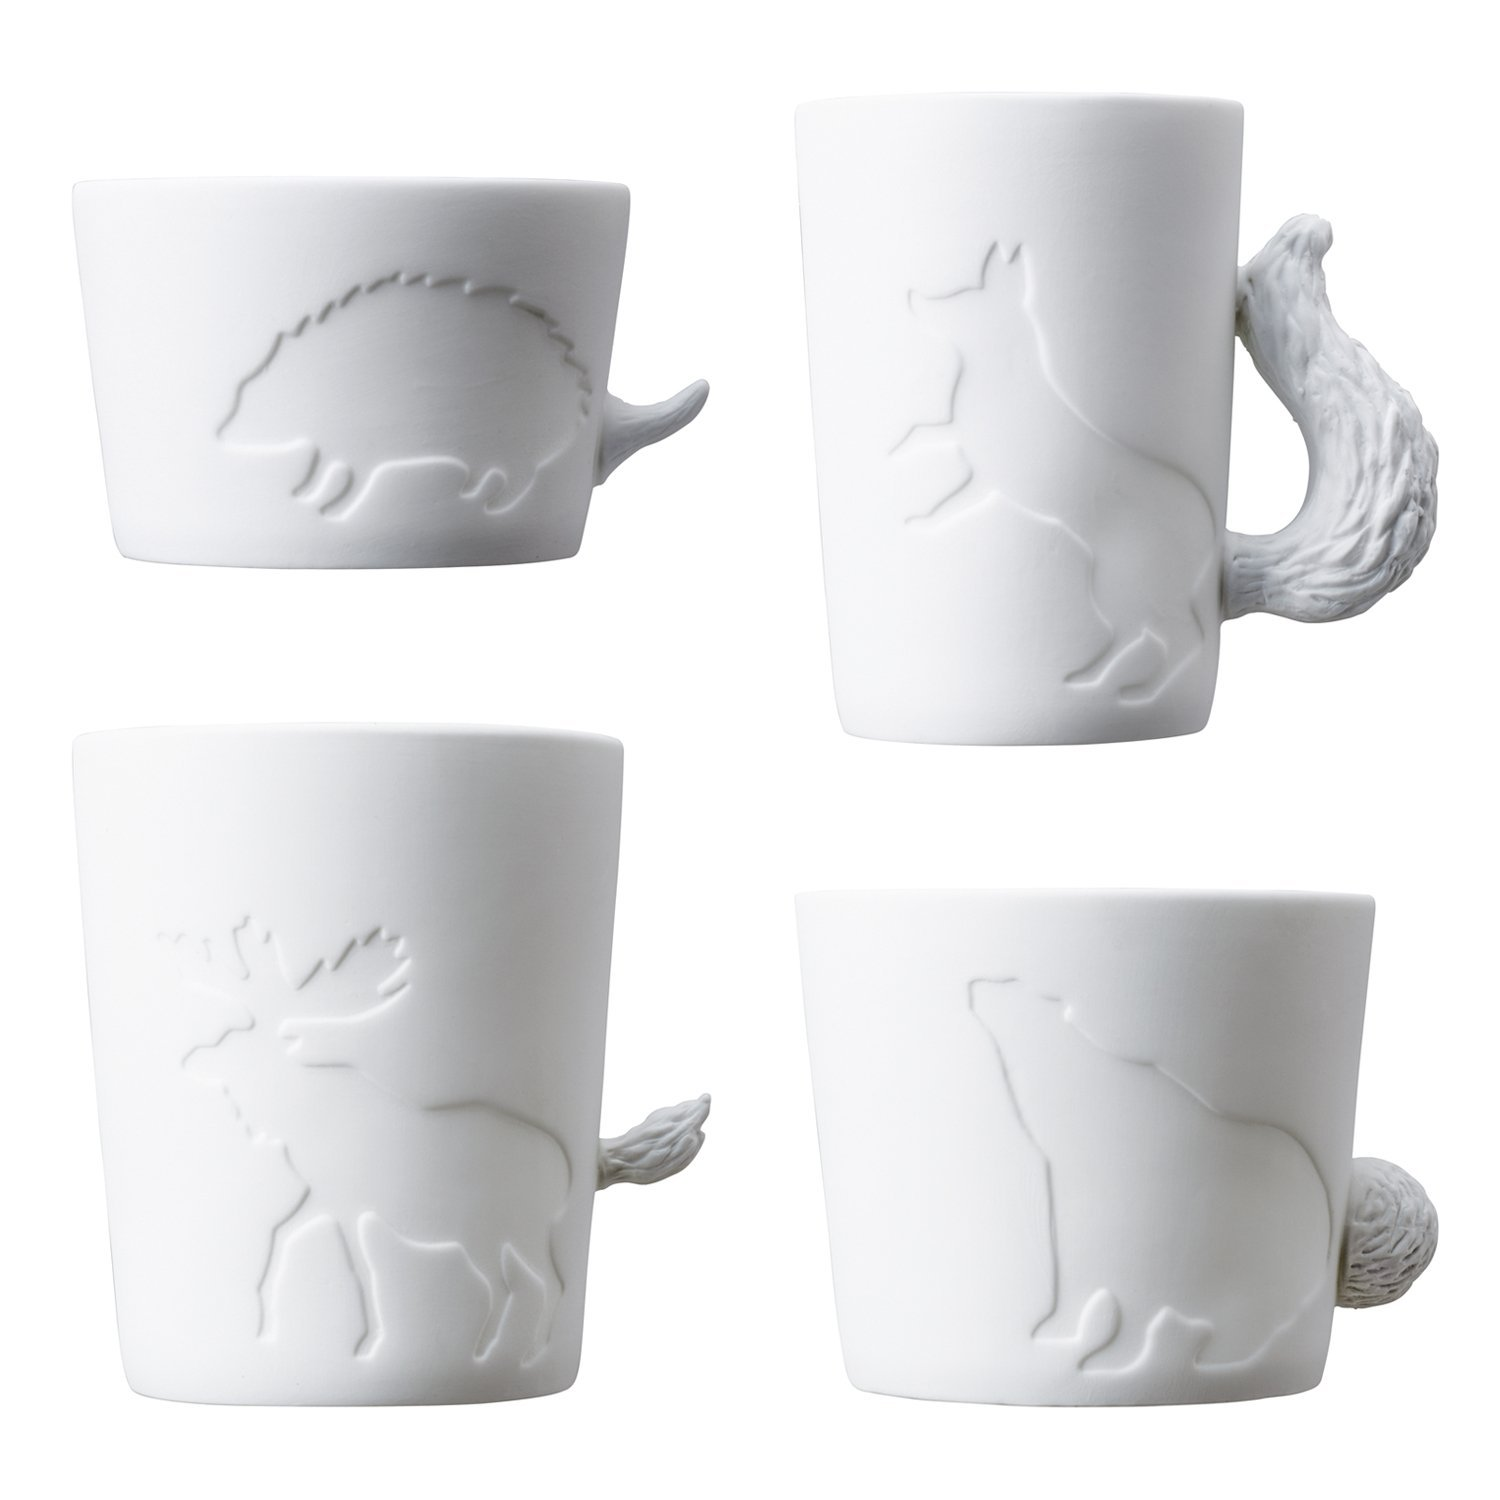 Odd Shaped Coffee Mugs The Stratheden House And Its Unusual Architecture